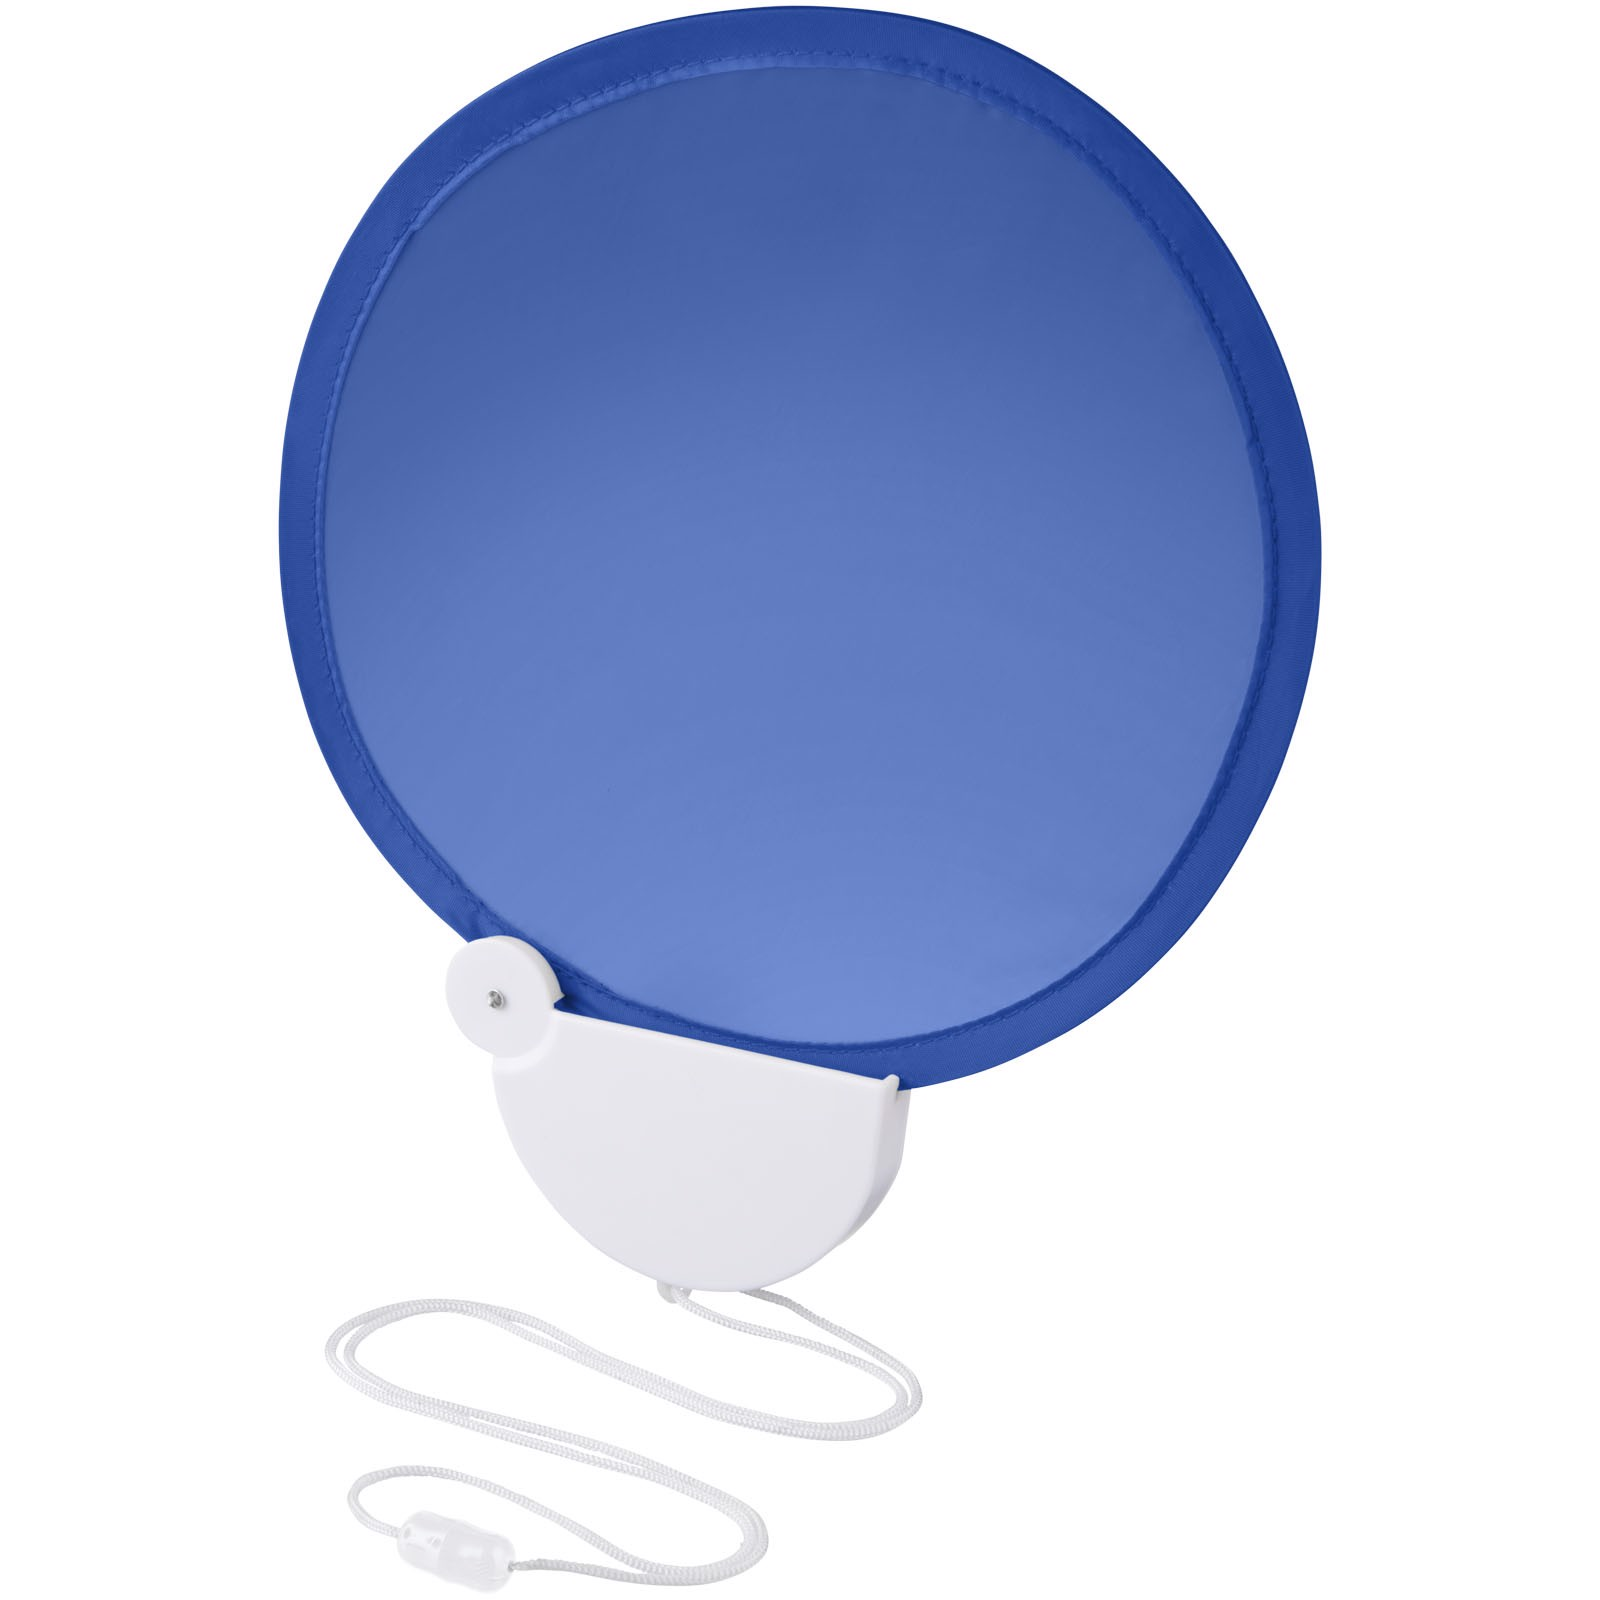 Breeze foldable hand fan with cord - Royal blue / White